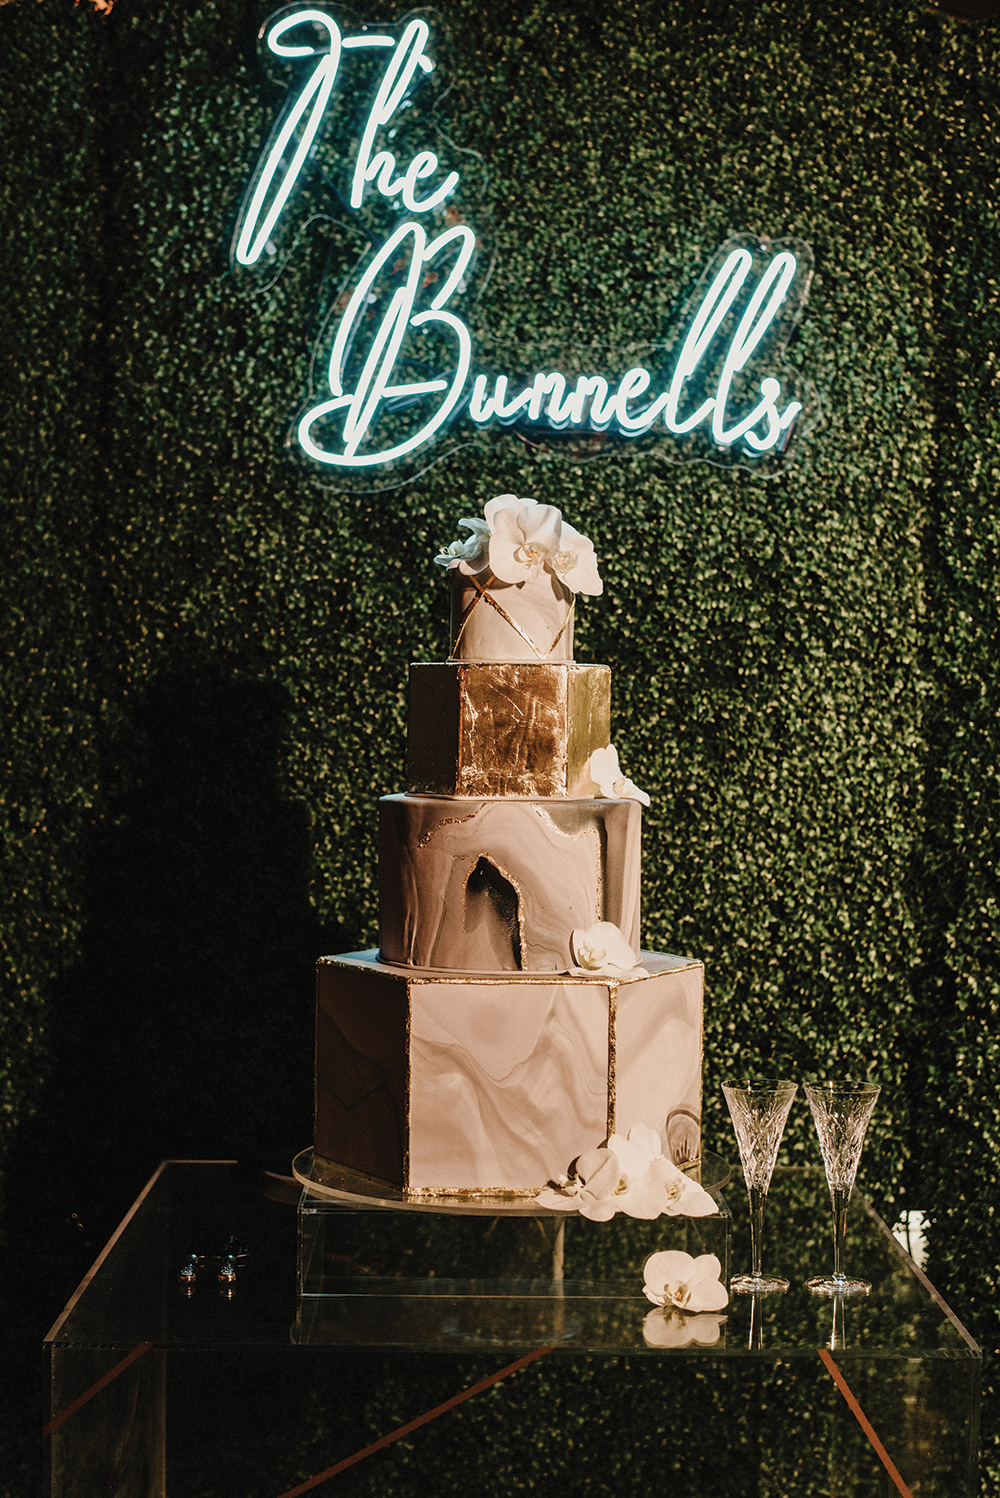 Susie's cakes - wedding cake - neon sign